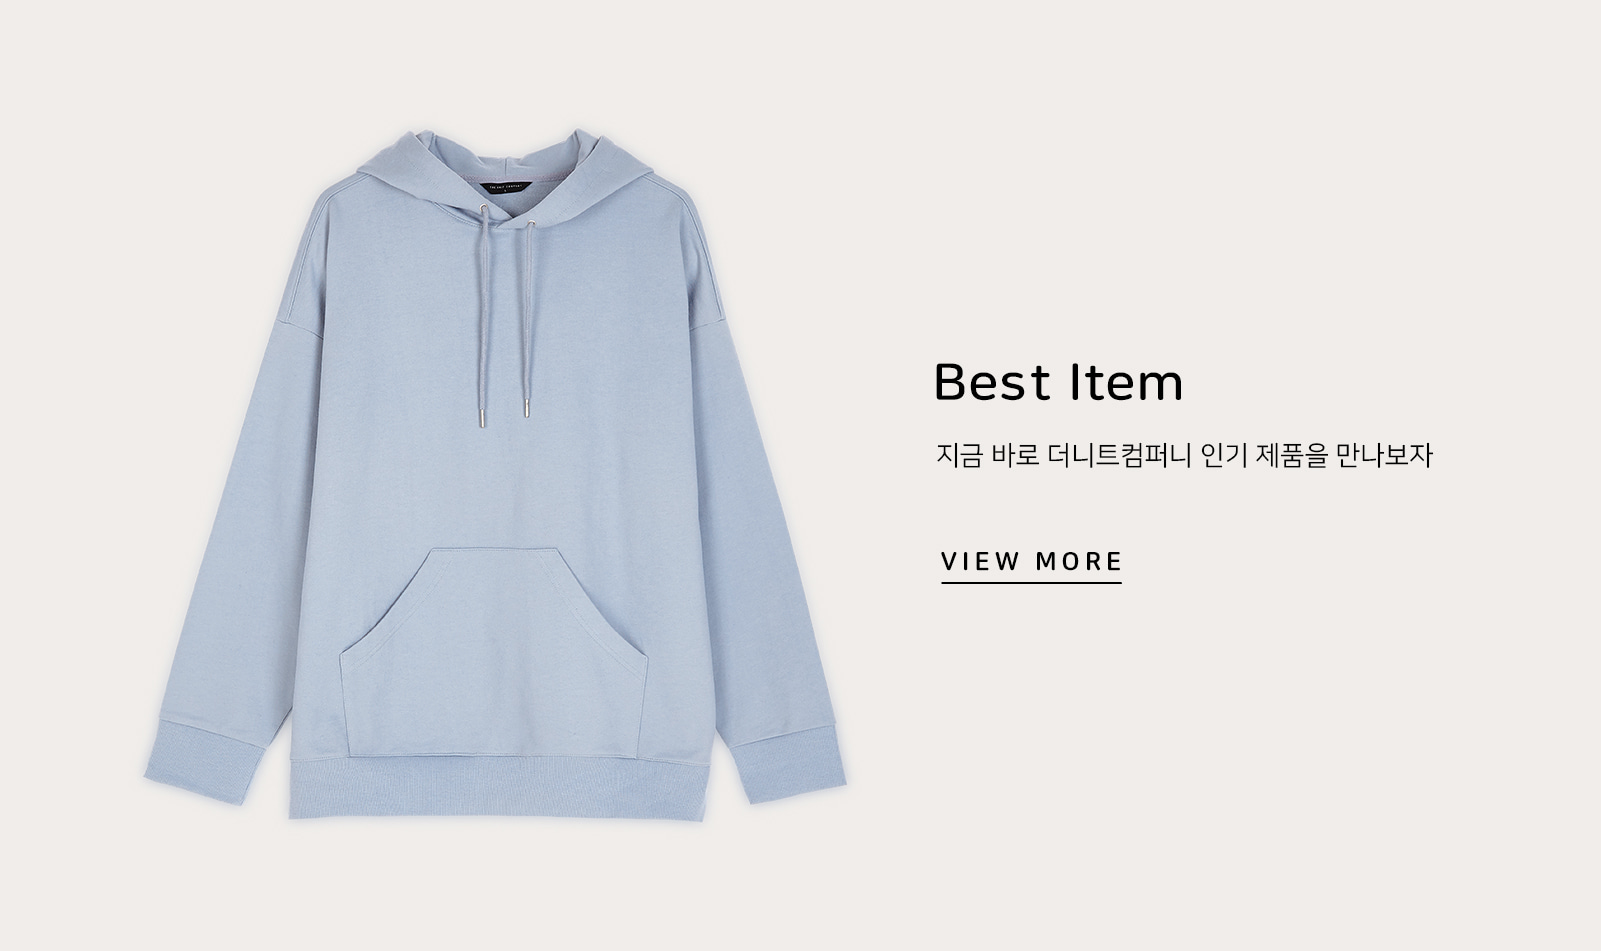 http://theknitcompany.co.kr/product/best20.html?cate_no=37